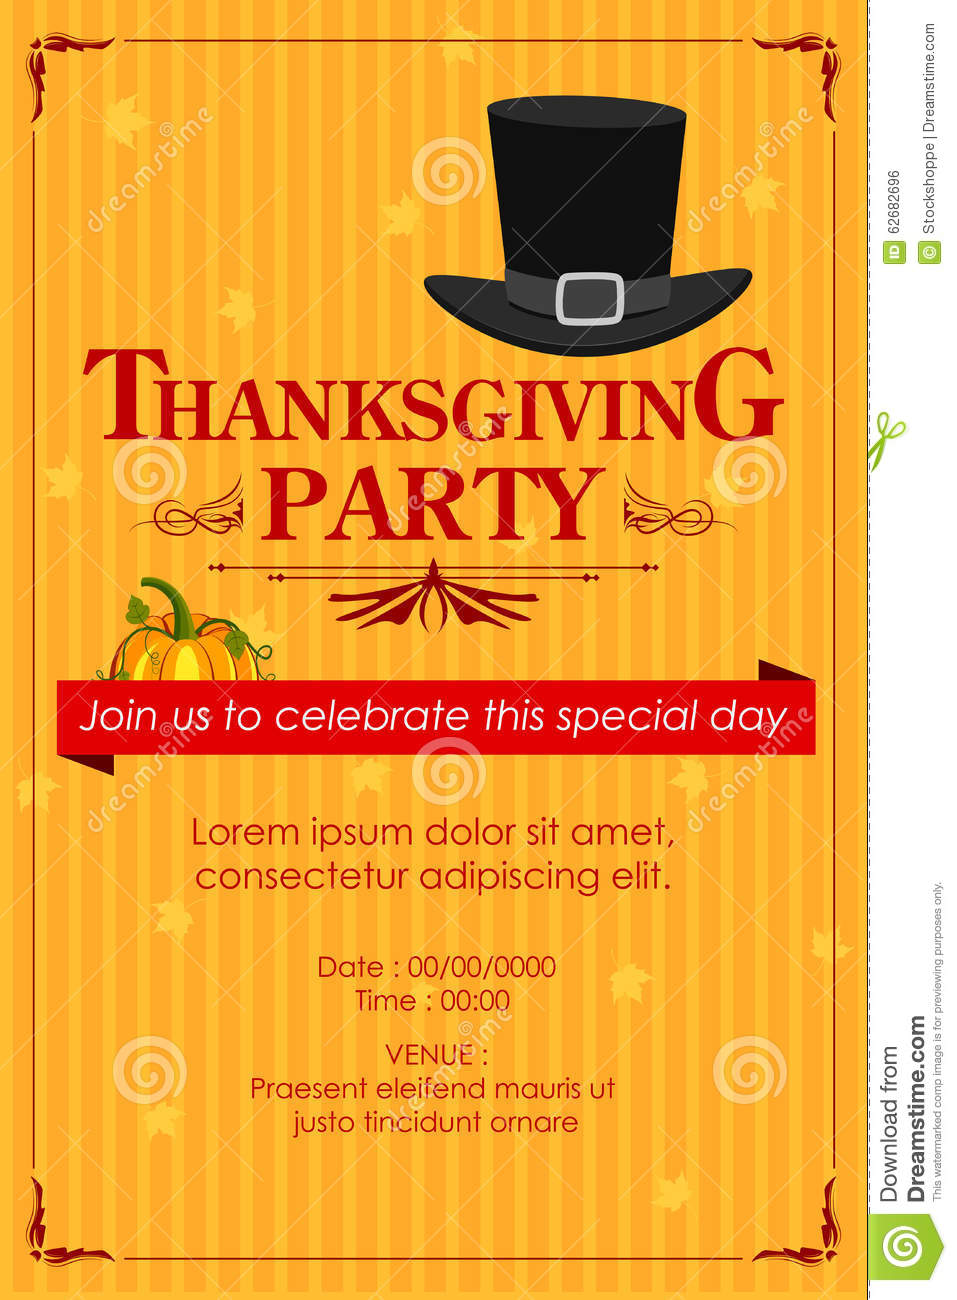 happy thanksgiving party invitation background stock